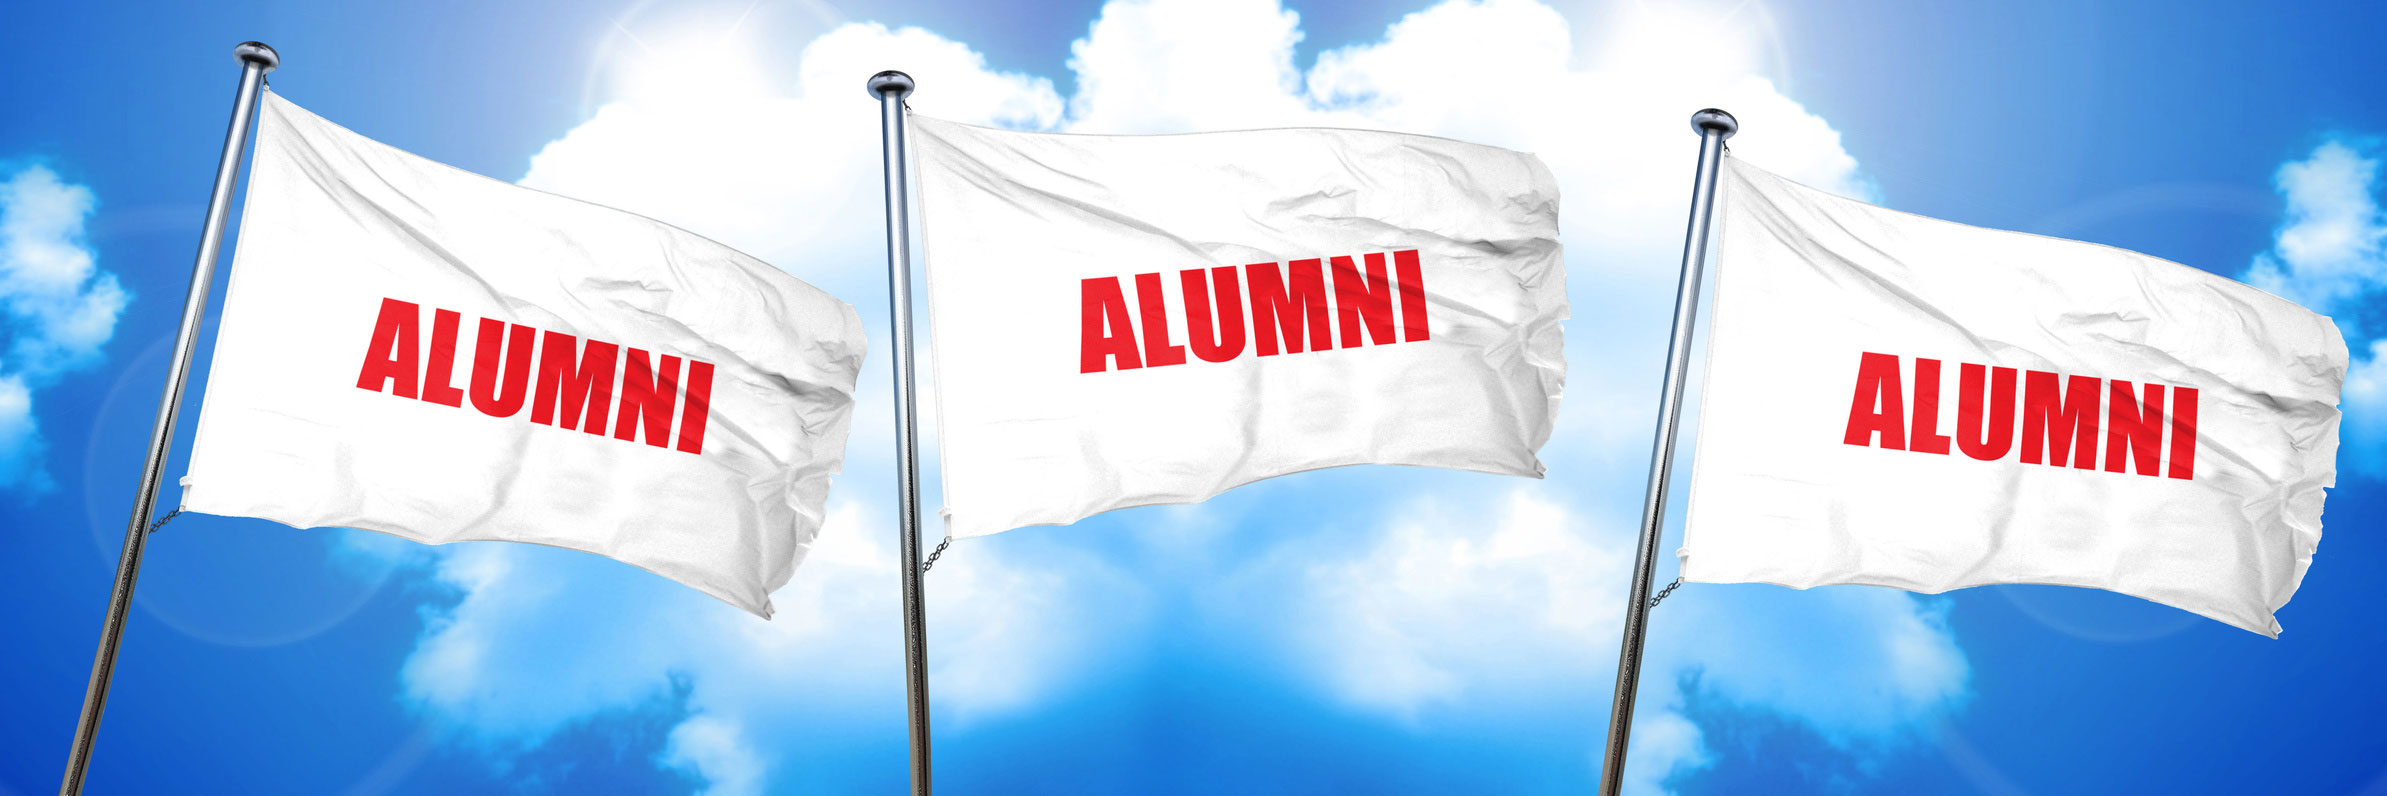 Alumni Flags